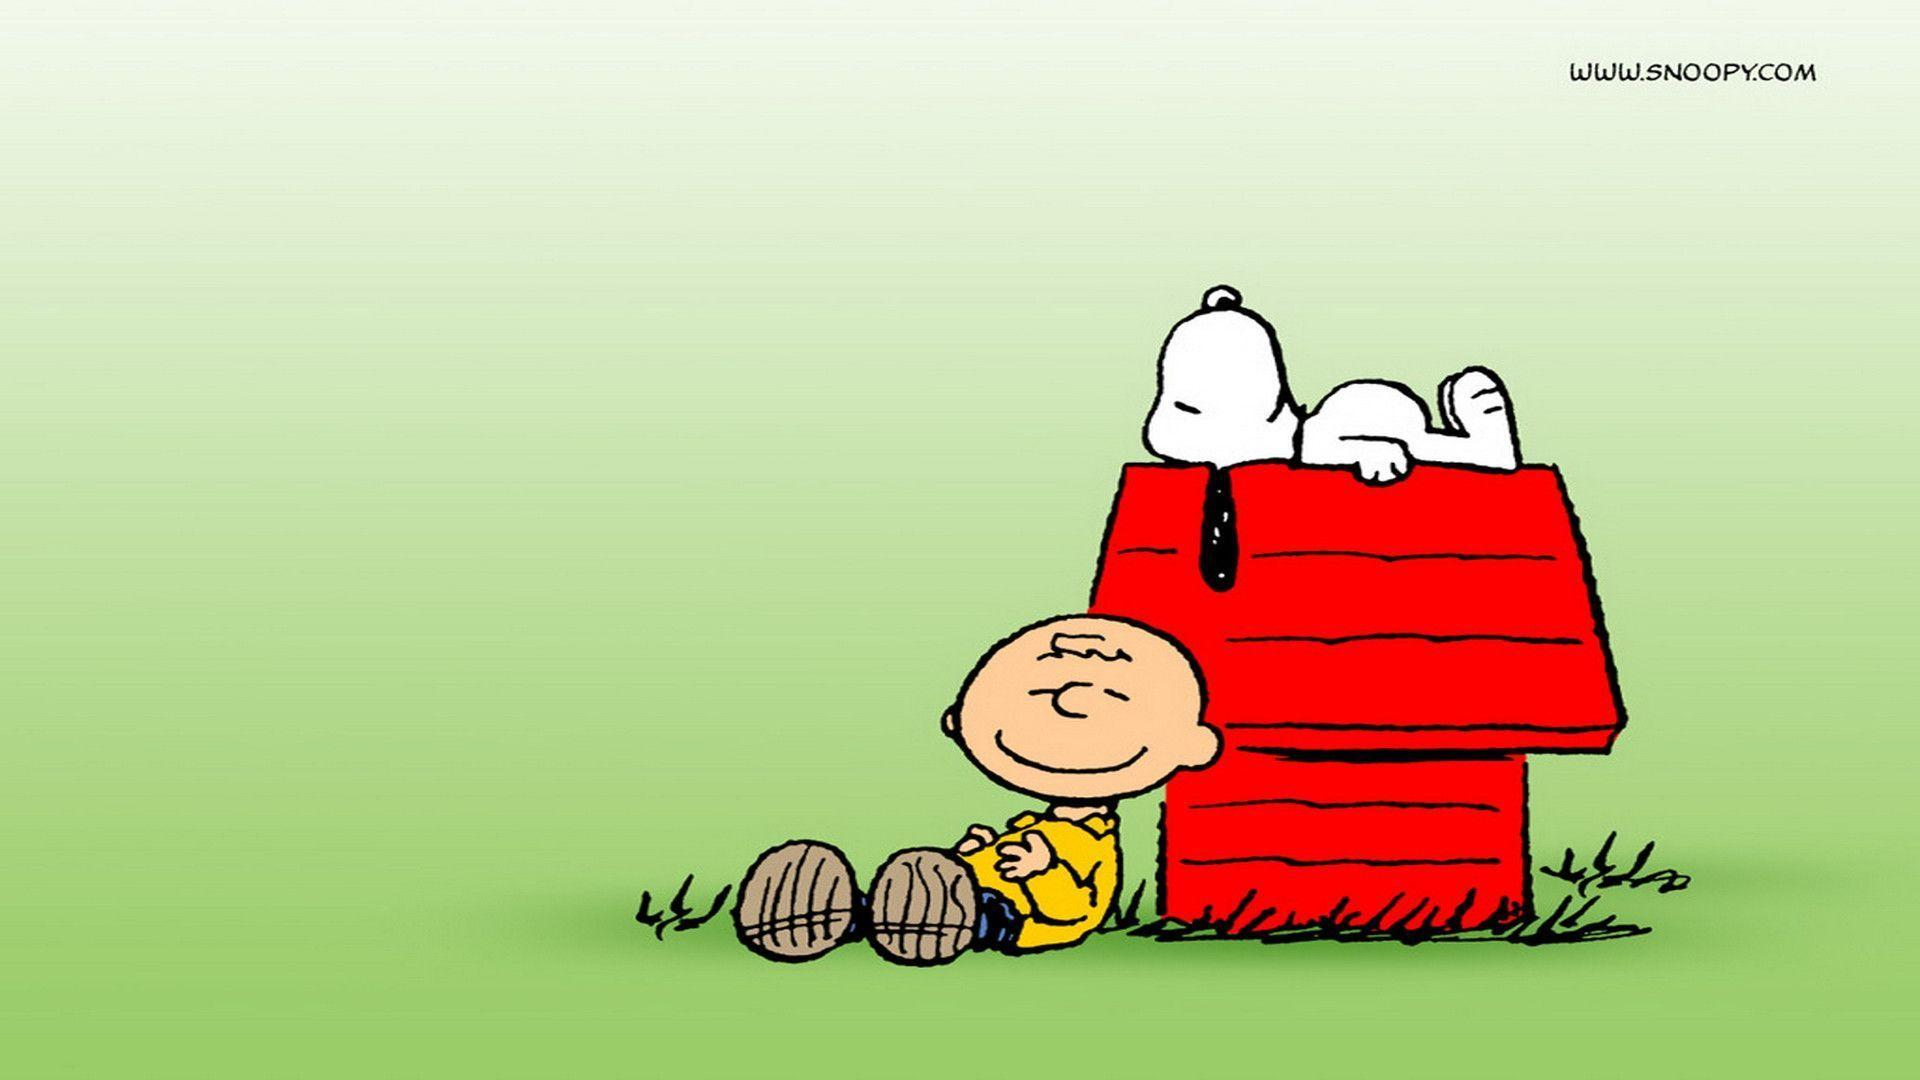 Snoopy Wallpapers 10 | HD Wallpapers | HD Background Wallpaper